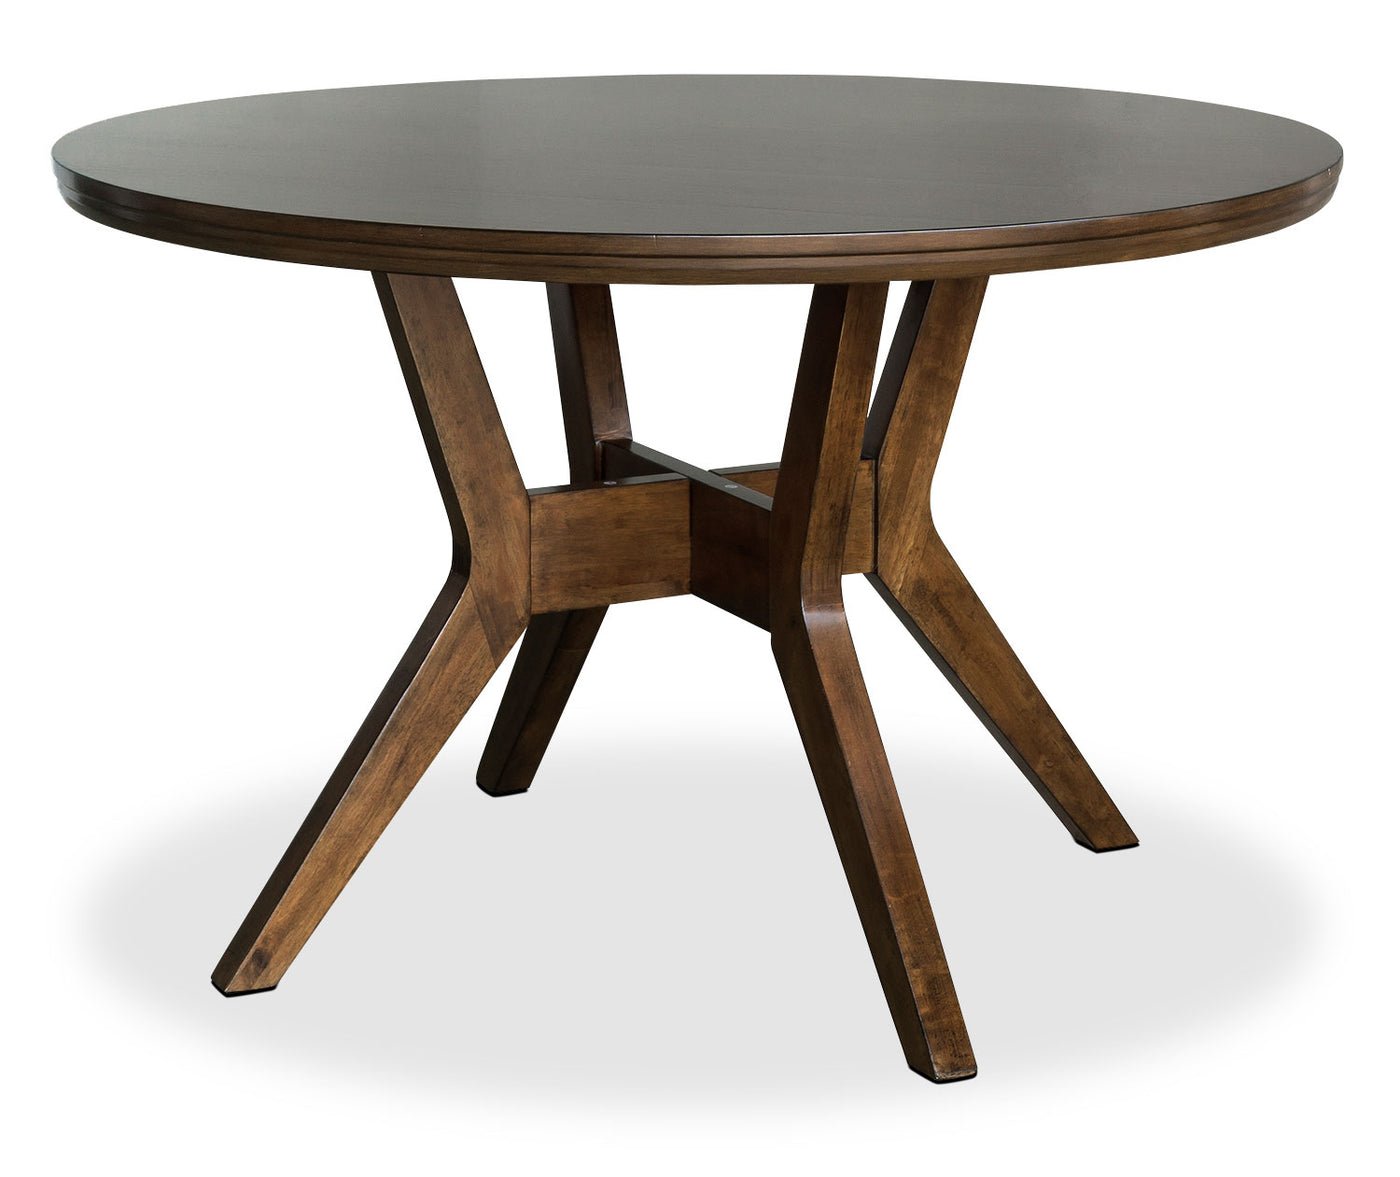 Round Dining Tables: Chelsea Round Dining Table